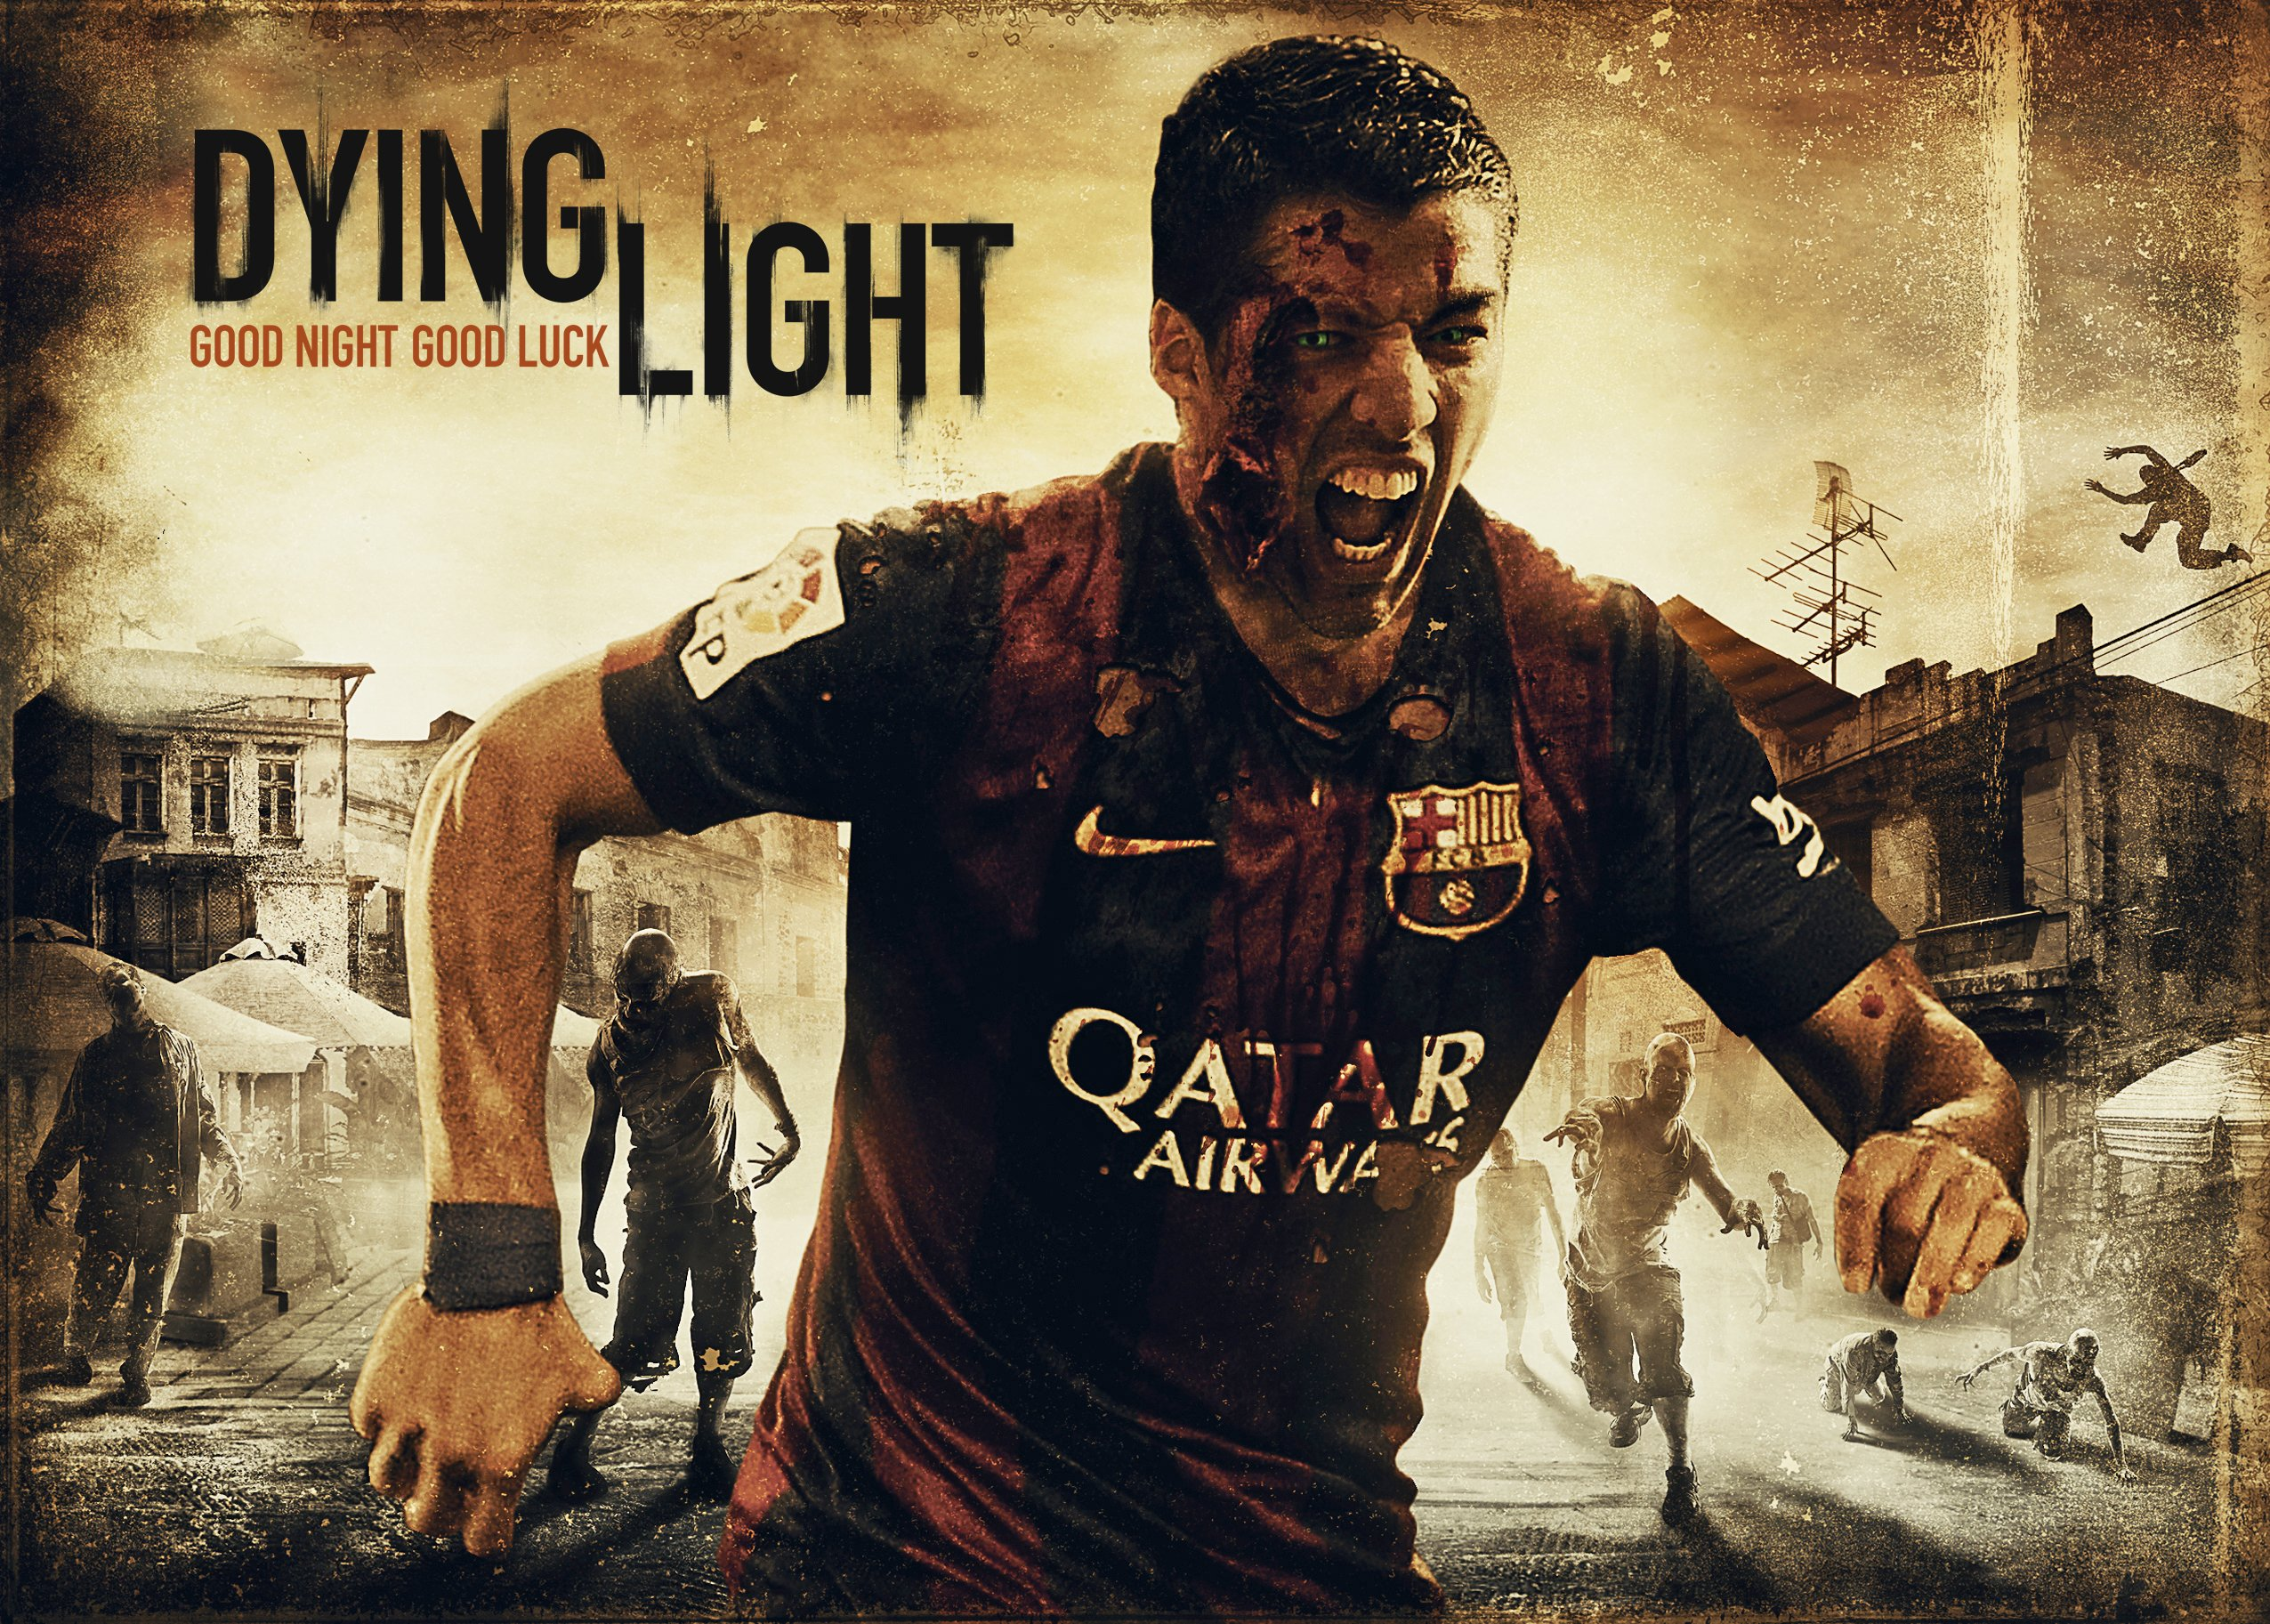 DYING LIGHT horror survival zombie apocalyptic dark action 1dlight rpg 2551x1825